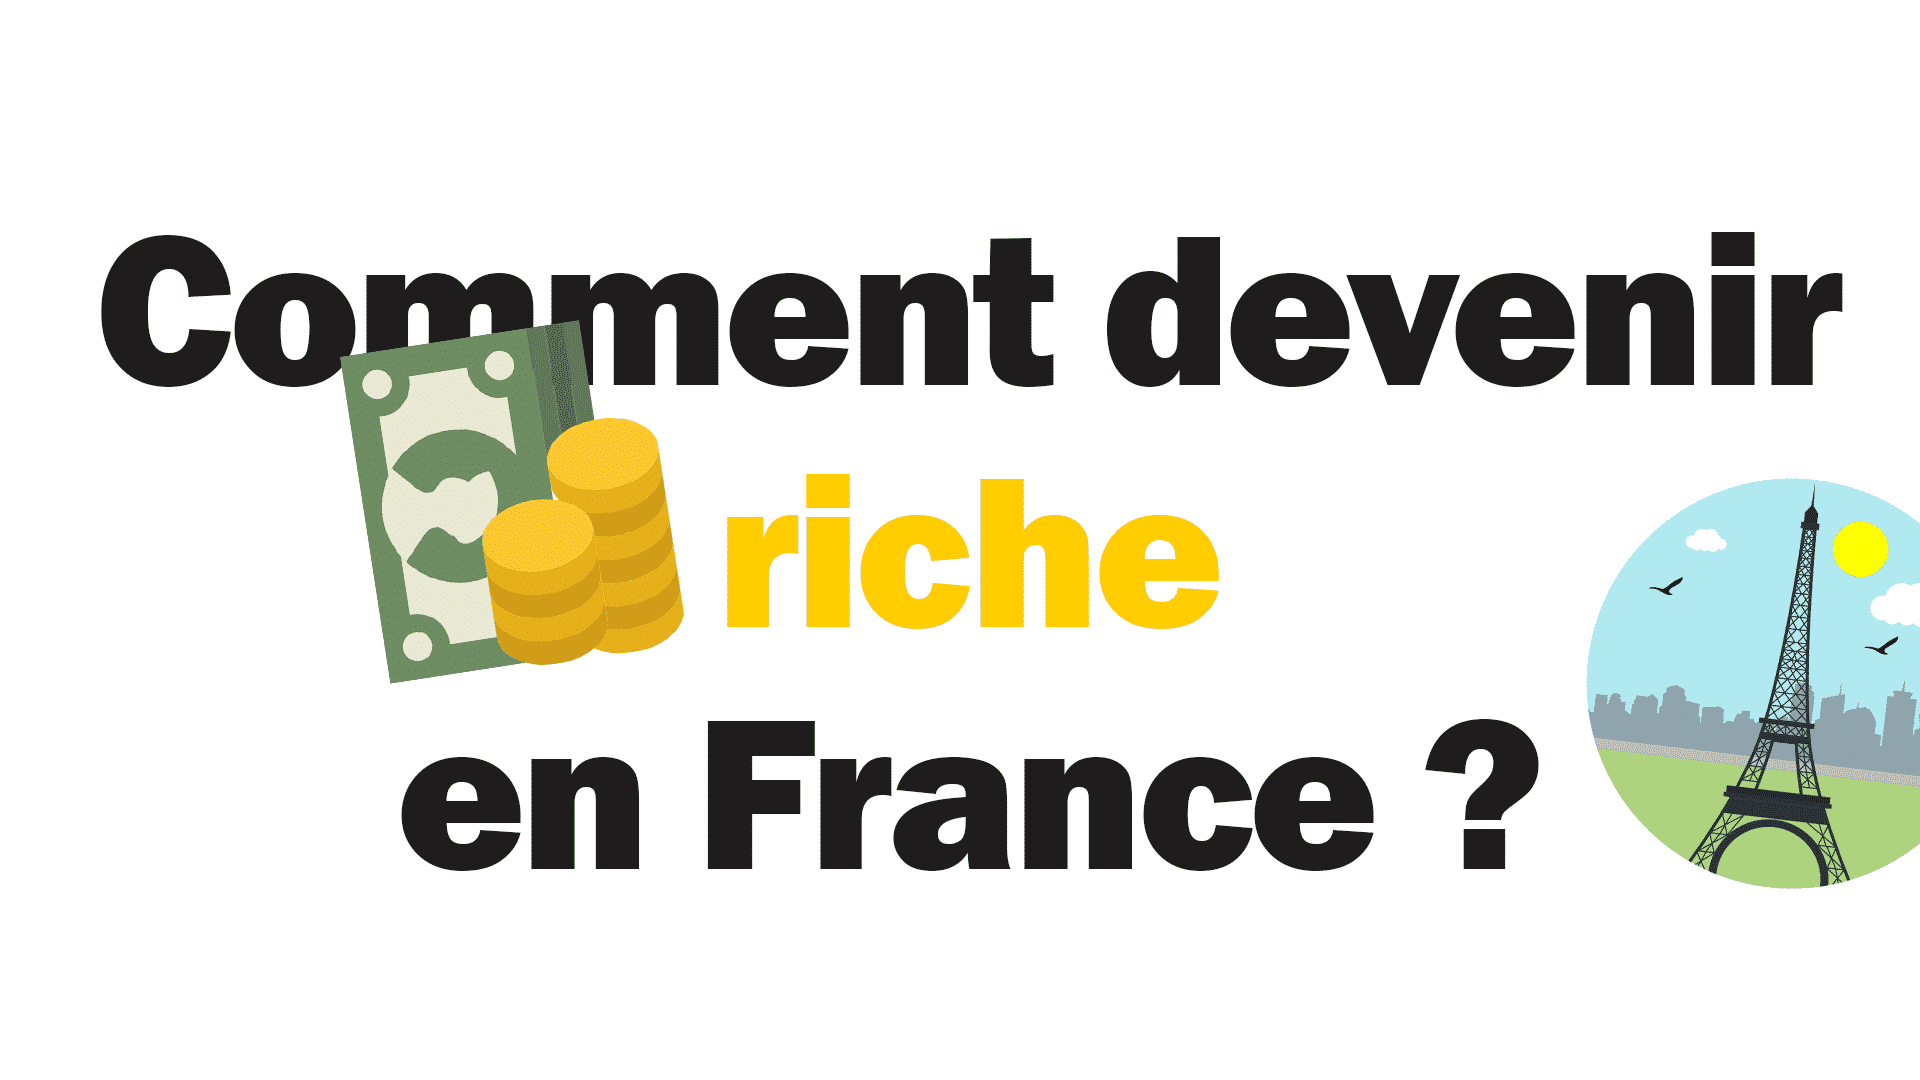 Comment devenir riche rapidement en France ?